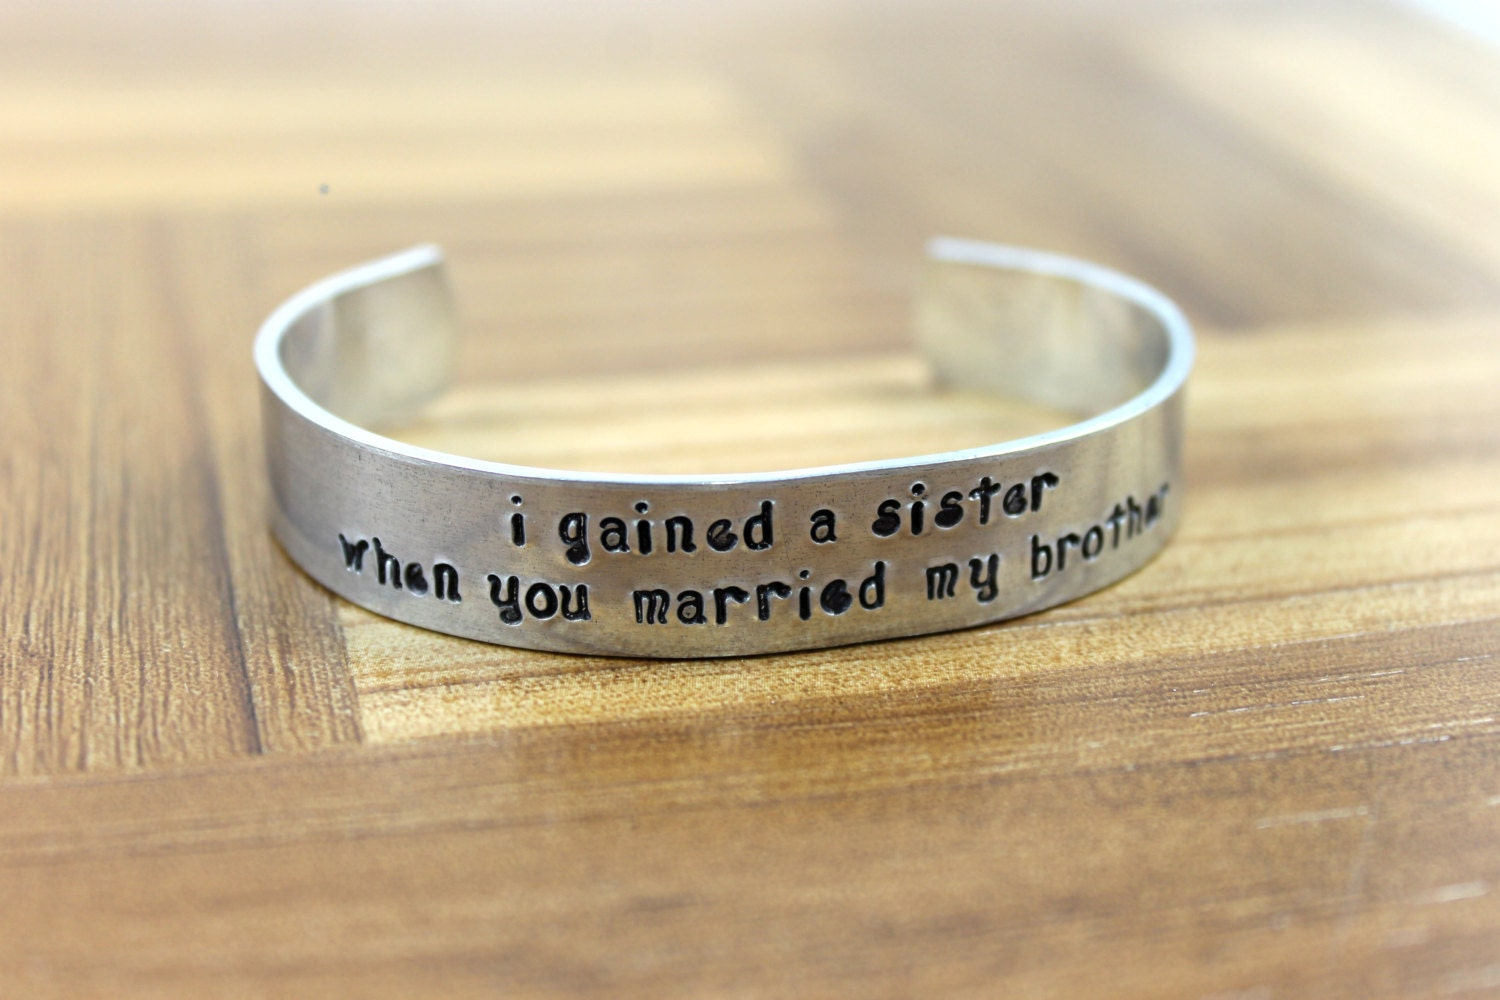 Wedding Gift Ideas For Brother In Law : Sister-in-Law Gift / I gained a sister when you married